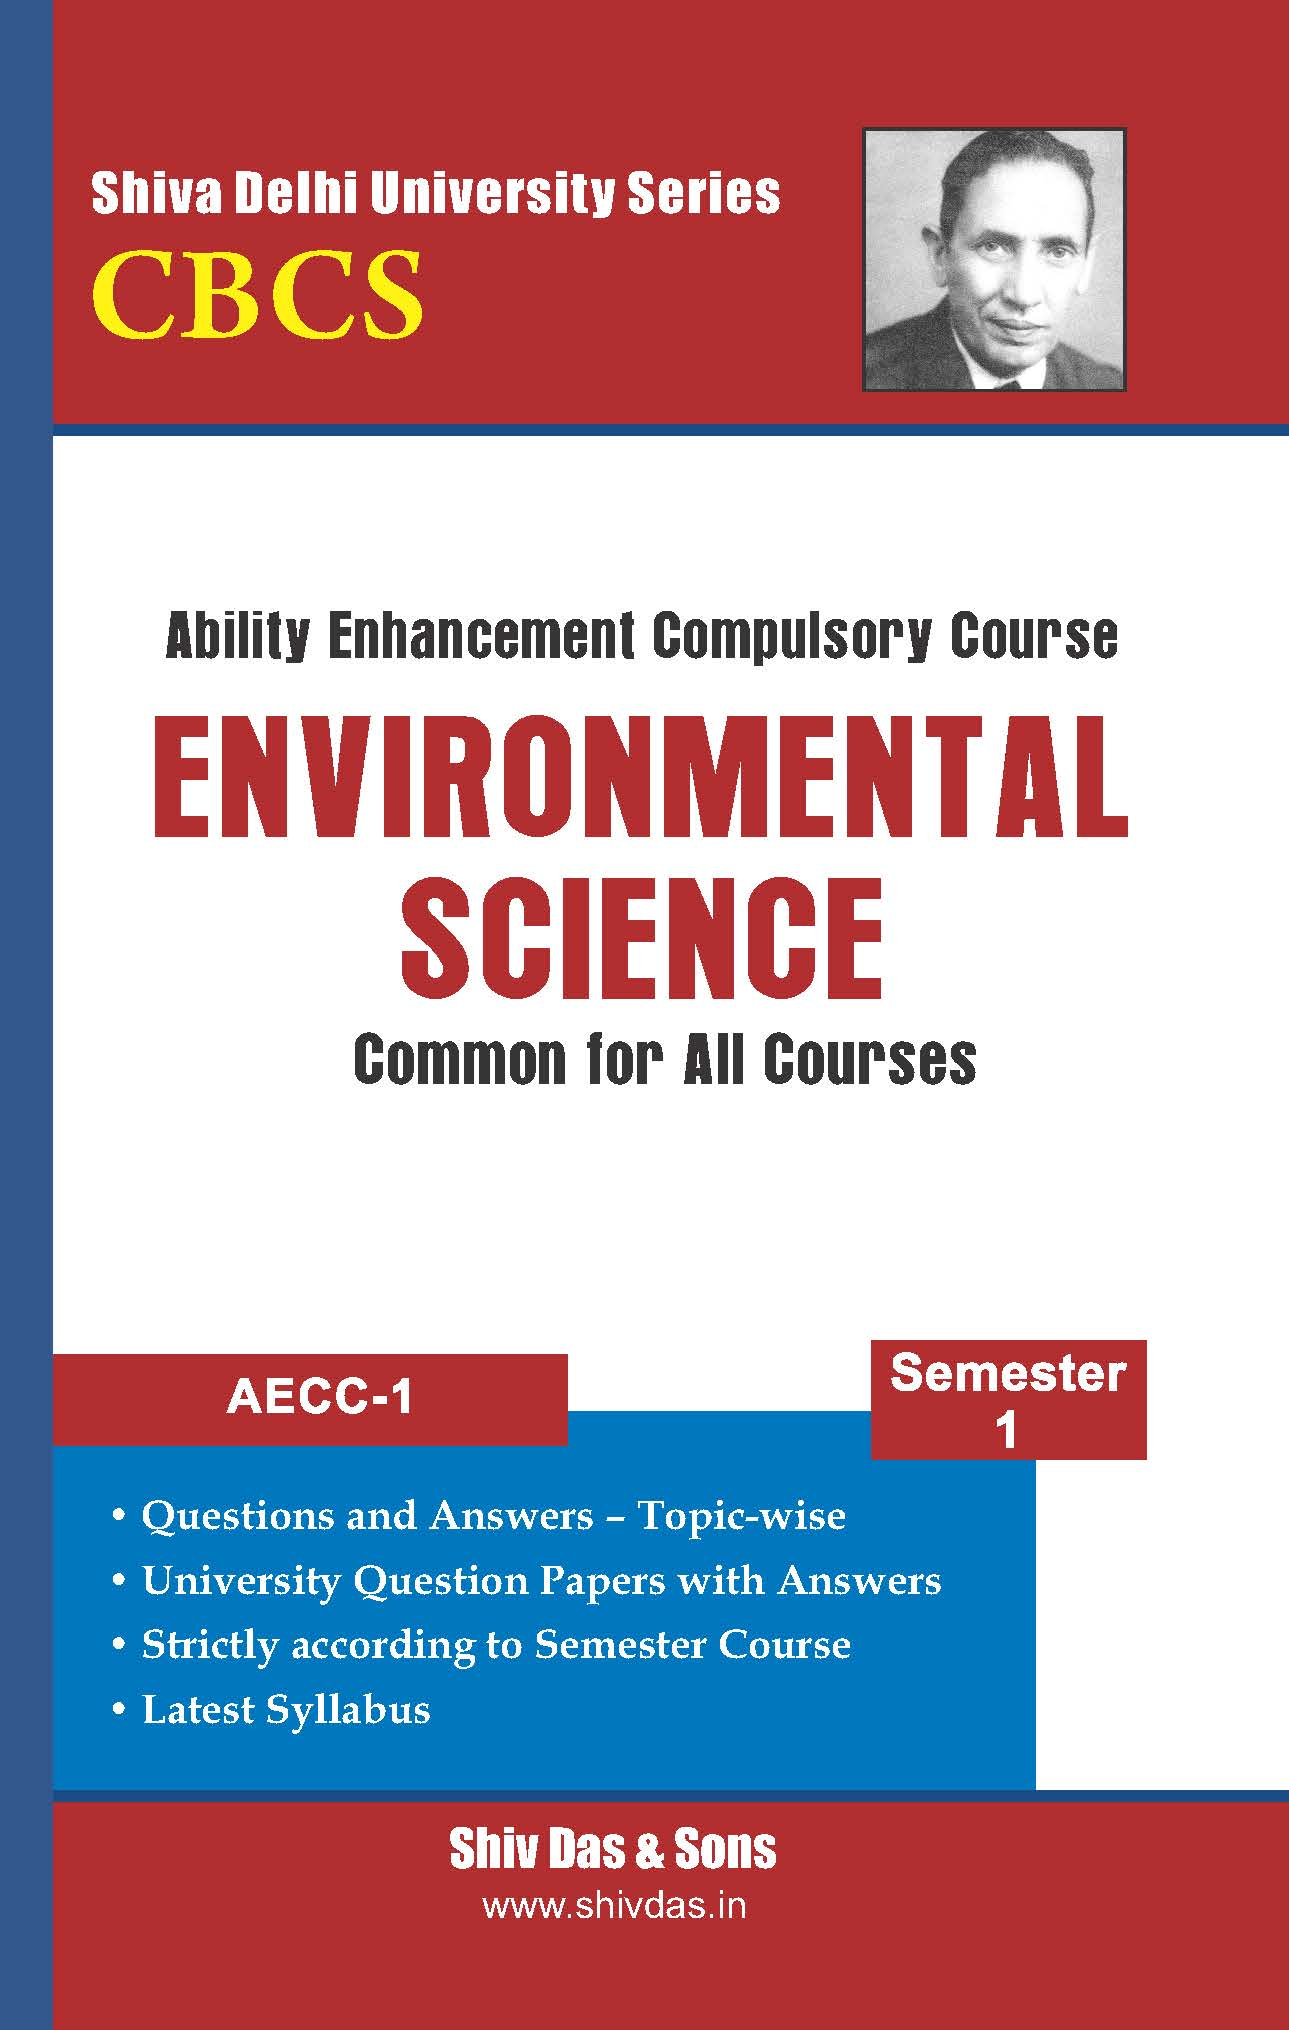 B.Com Hons. Semester-1 Environmental Science